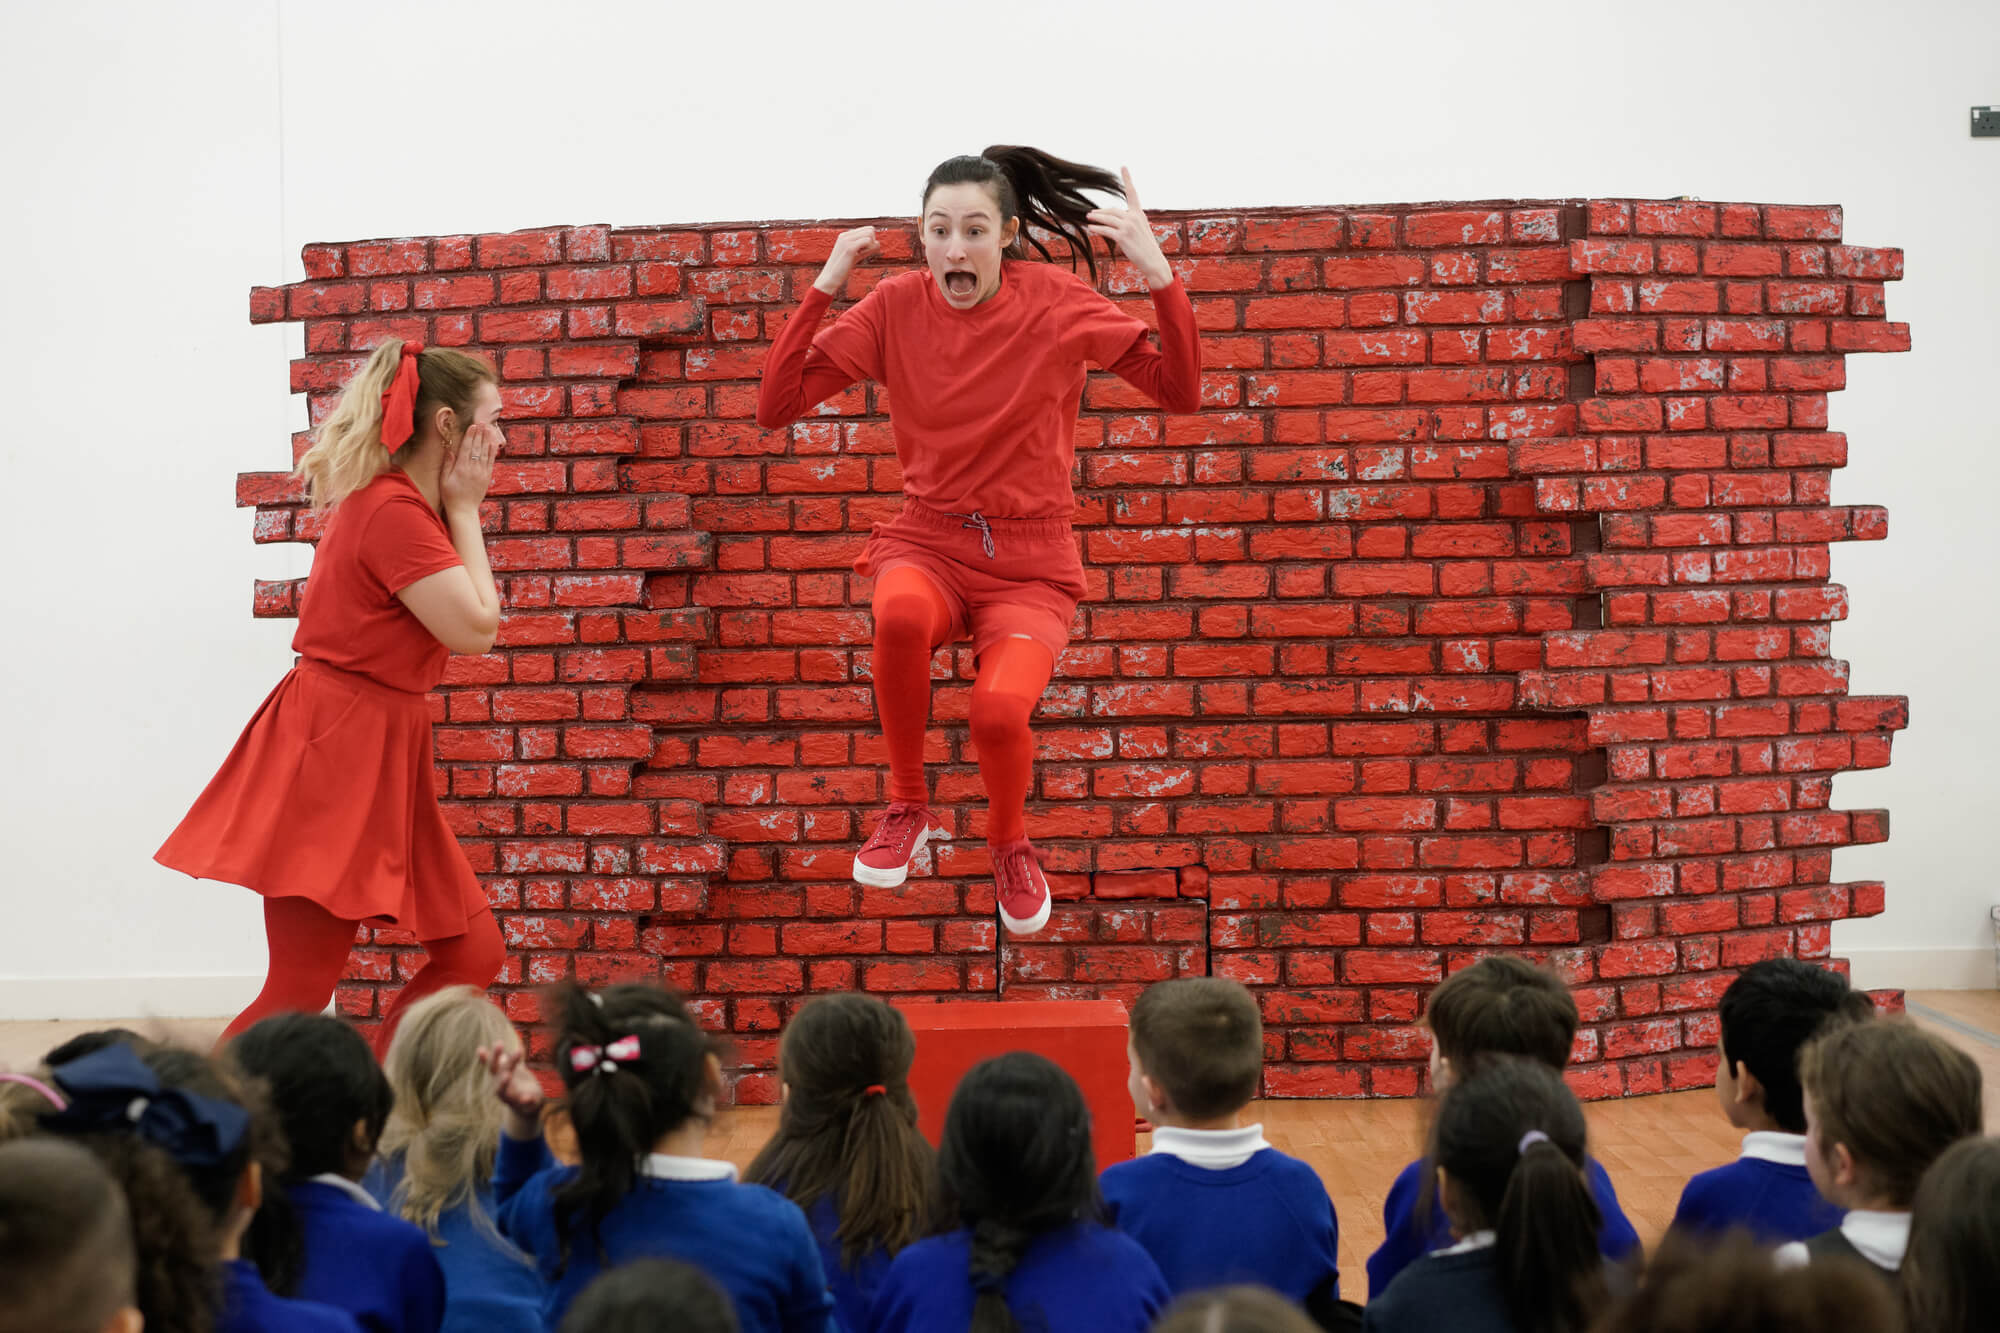 Applied Theatre and Education students taking part in a performance for a group of school children